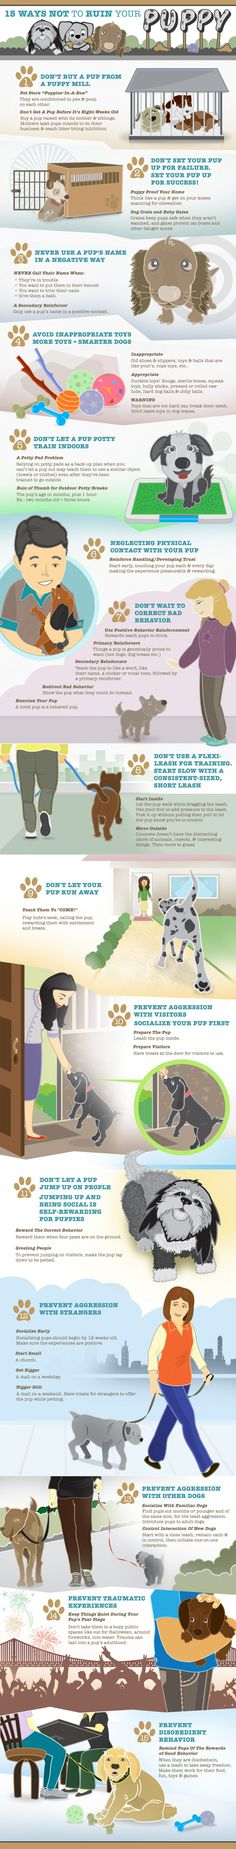 Just got a new puppy? Here are some tips to make sure you have a happy, healthy, and well-behaved dog!